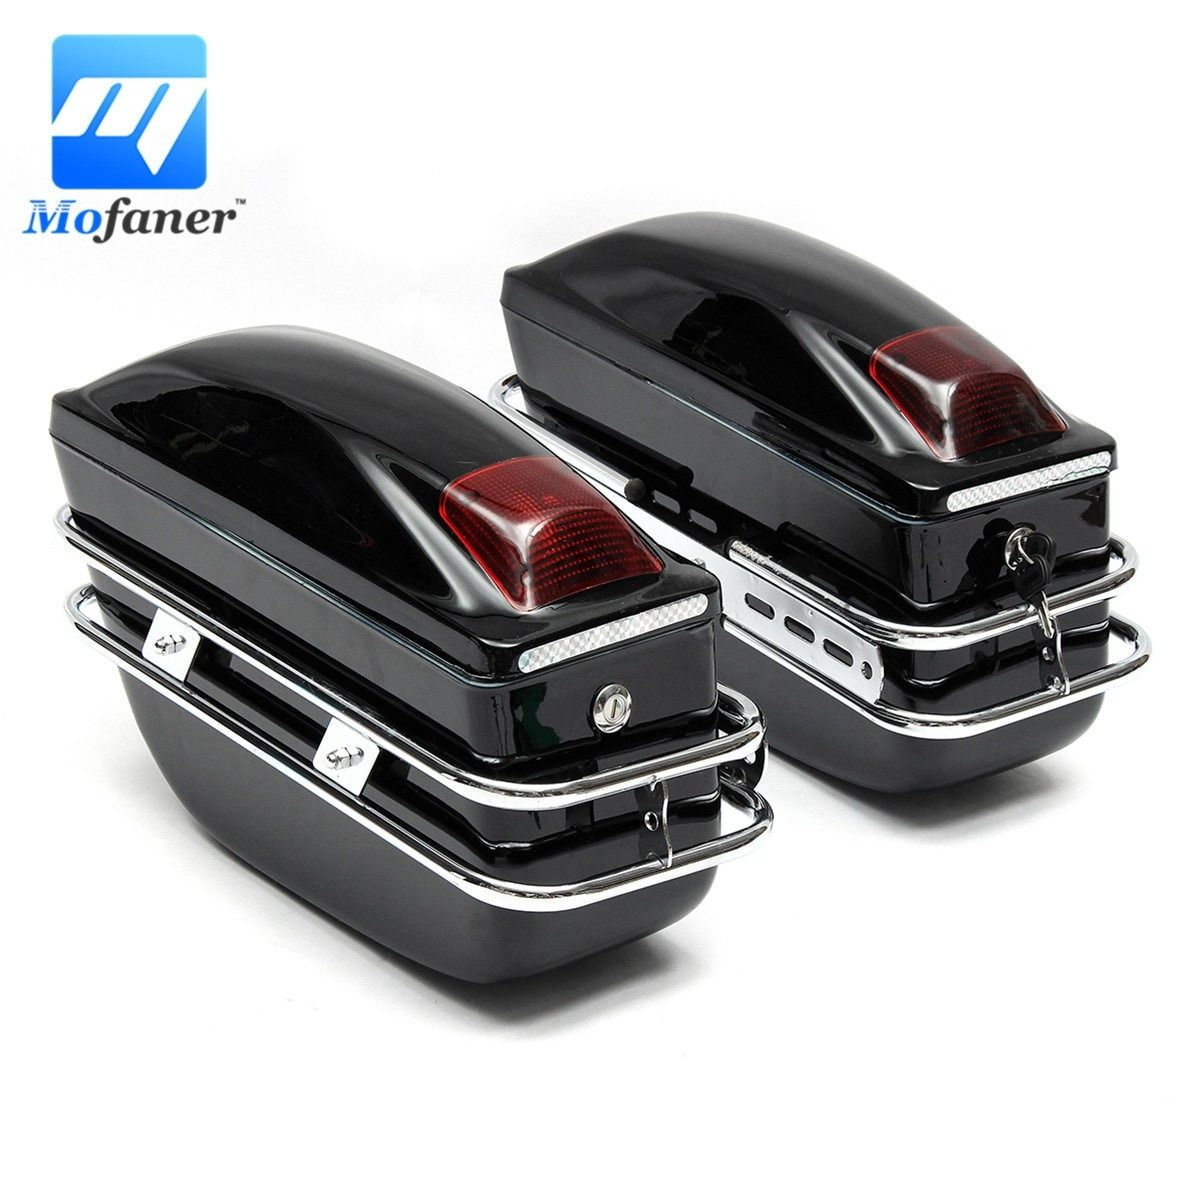 Mofaner 2 Pieces Motorcycle Saddle Bags Retro Large Capacity Motorbike Tail Rear Bags For Harley-Davidson